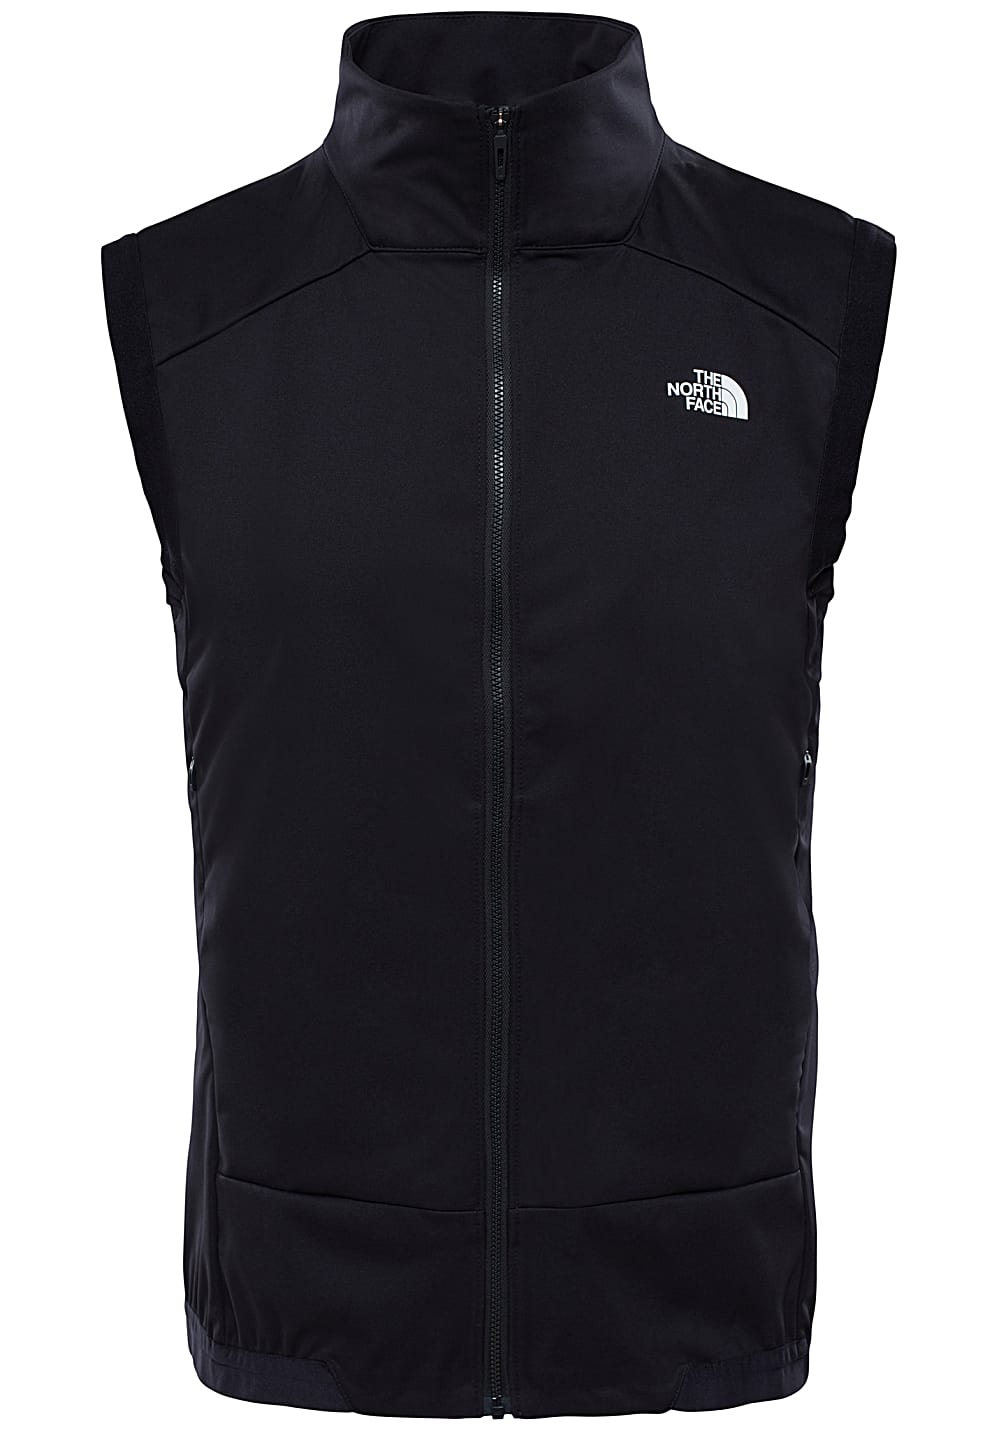 4f3a2027f THE NORTH FACE Aterpea II Softshell - Vest for Men - Black